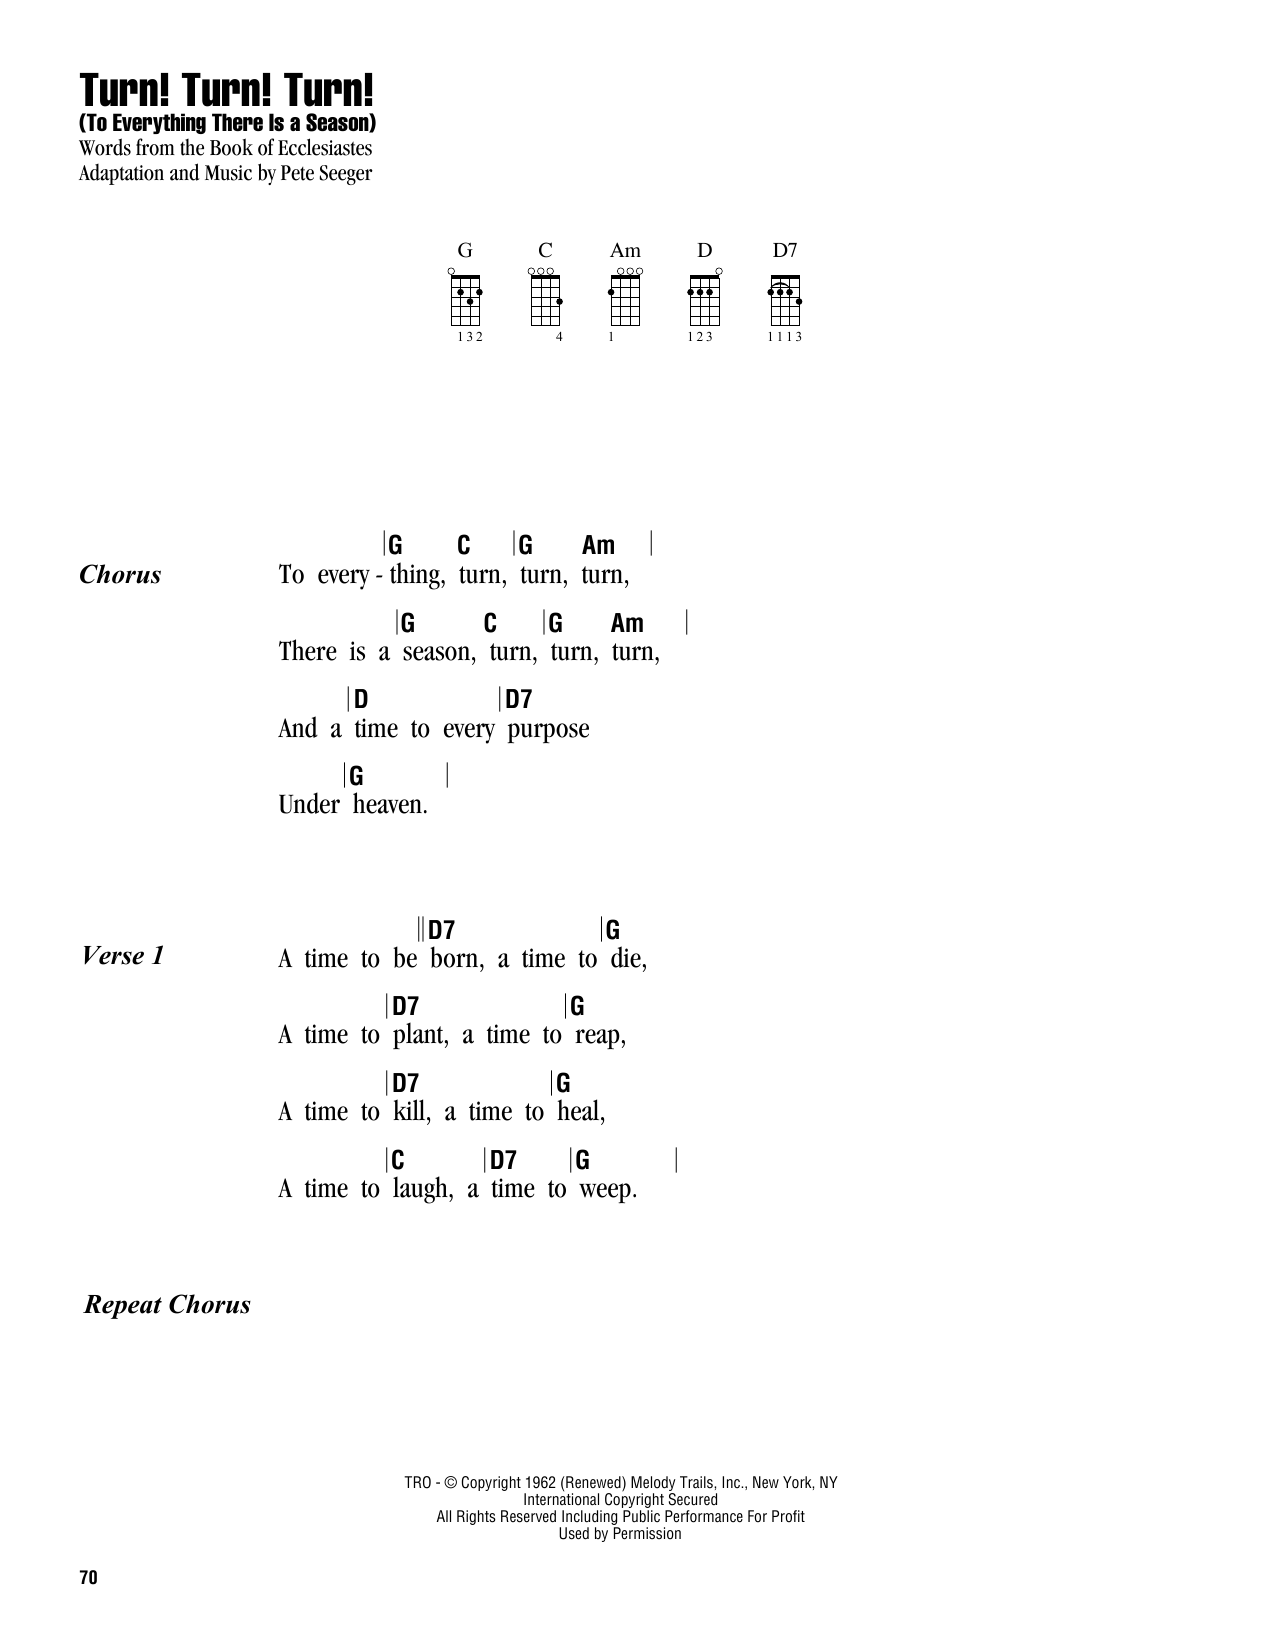 Tablature guitare Turn! Turn! Turn! (To Everything There Is A Season) de The Byrds - Ukulele (strumming patterns)